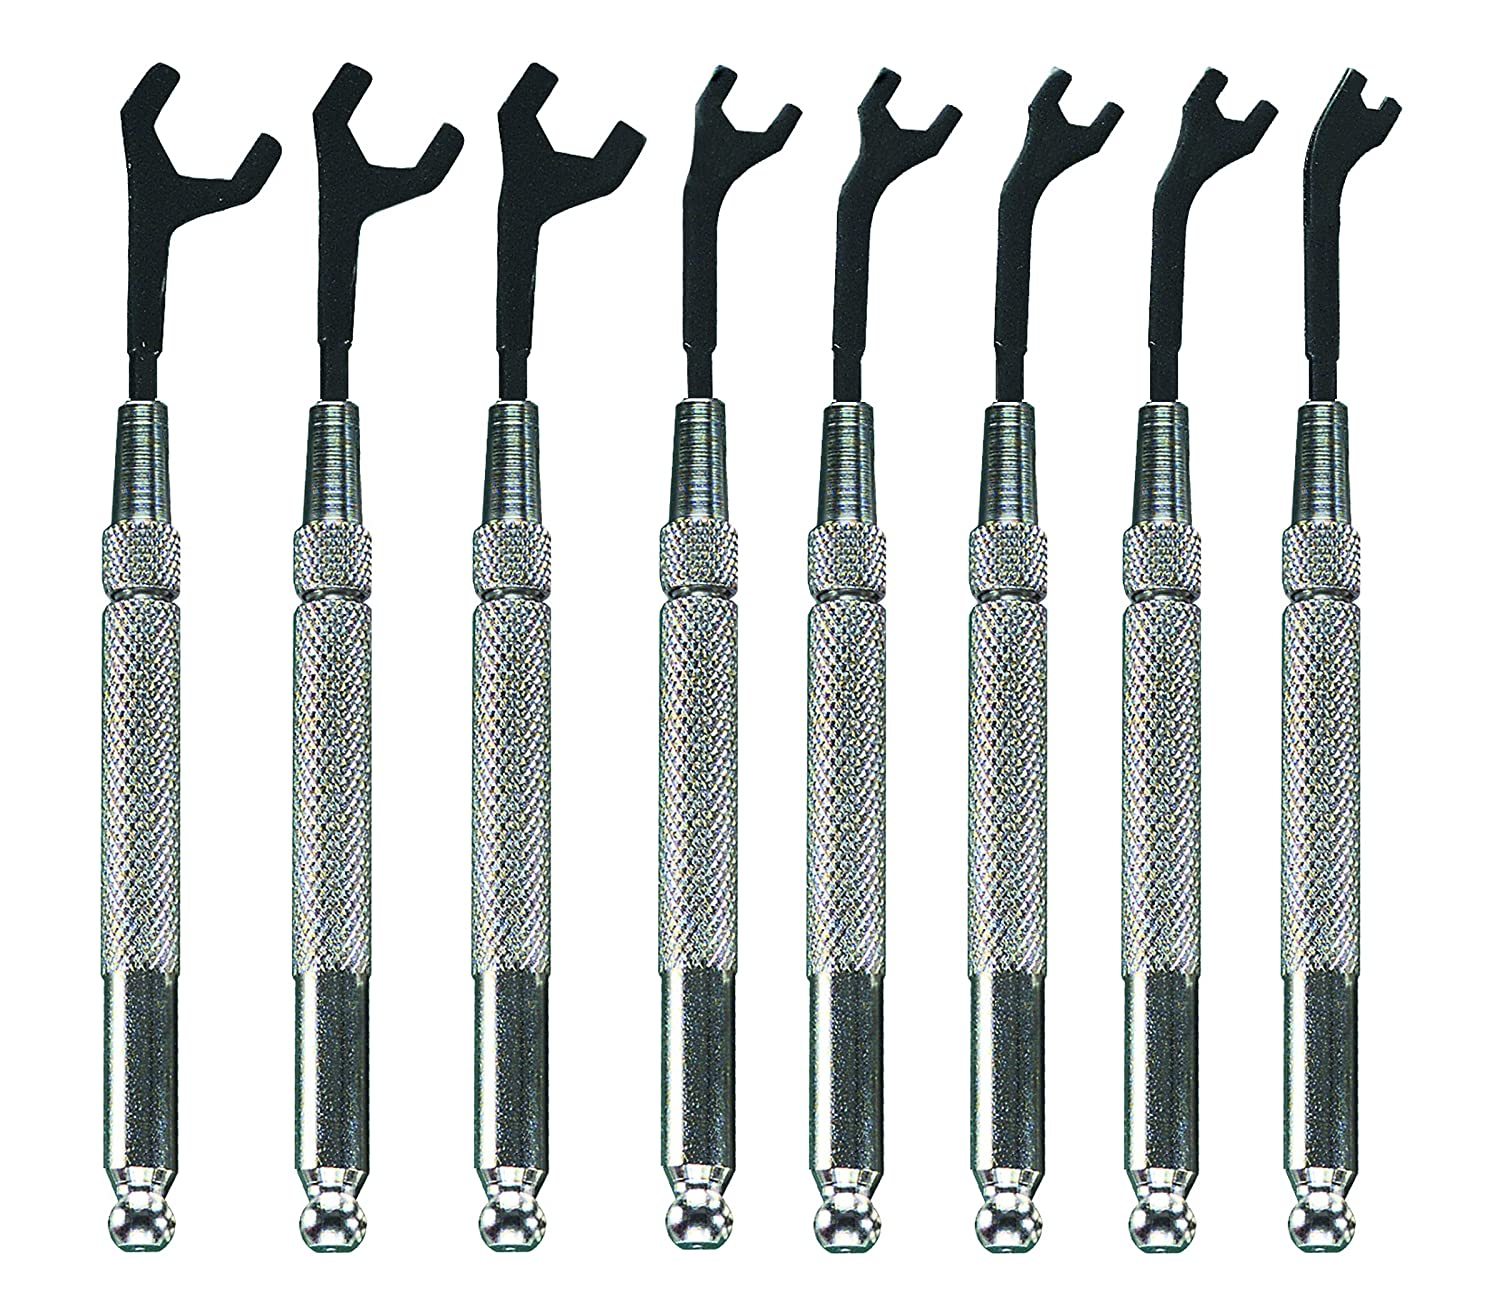 Moody Tools 58-0151 8-Piece Open End Wrench Set 003554